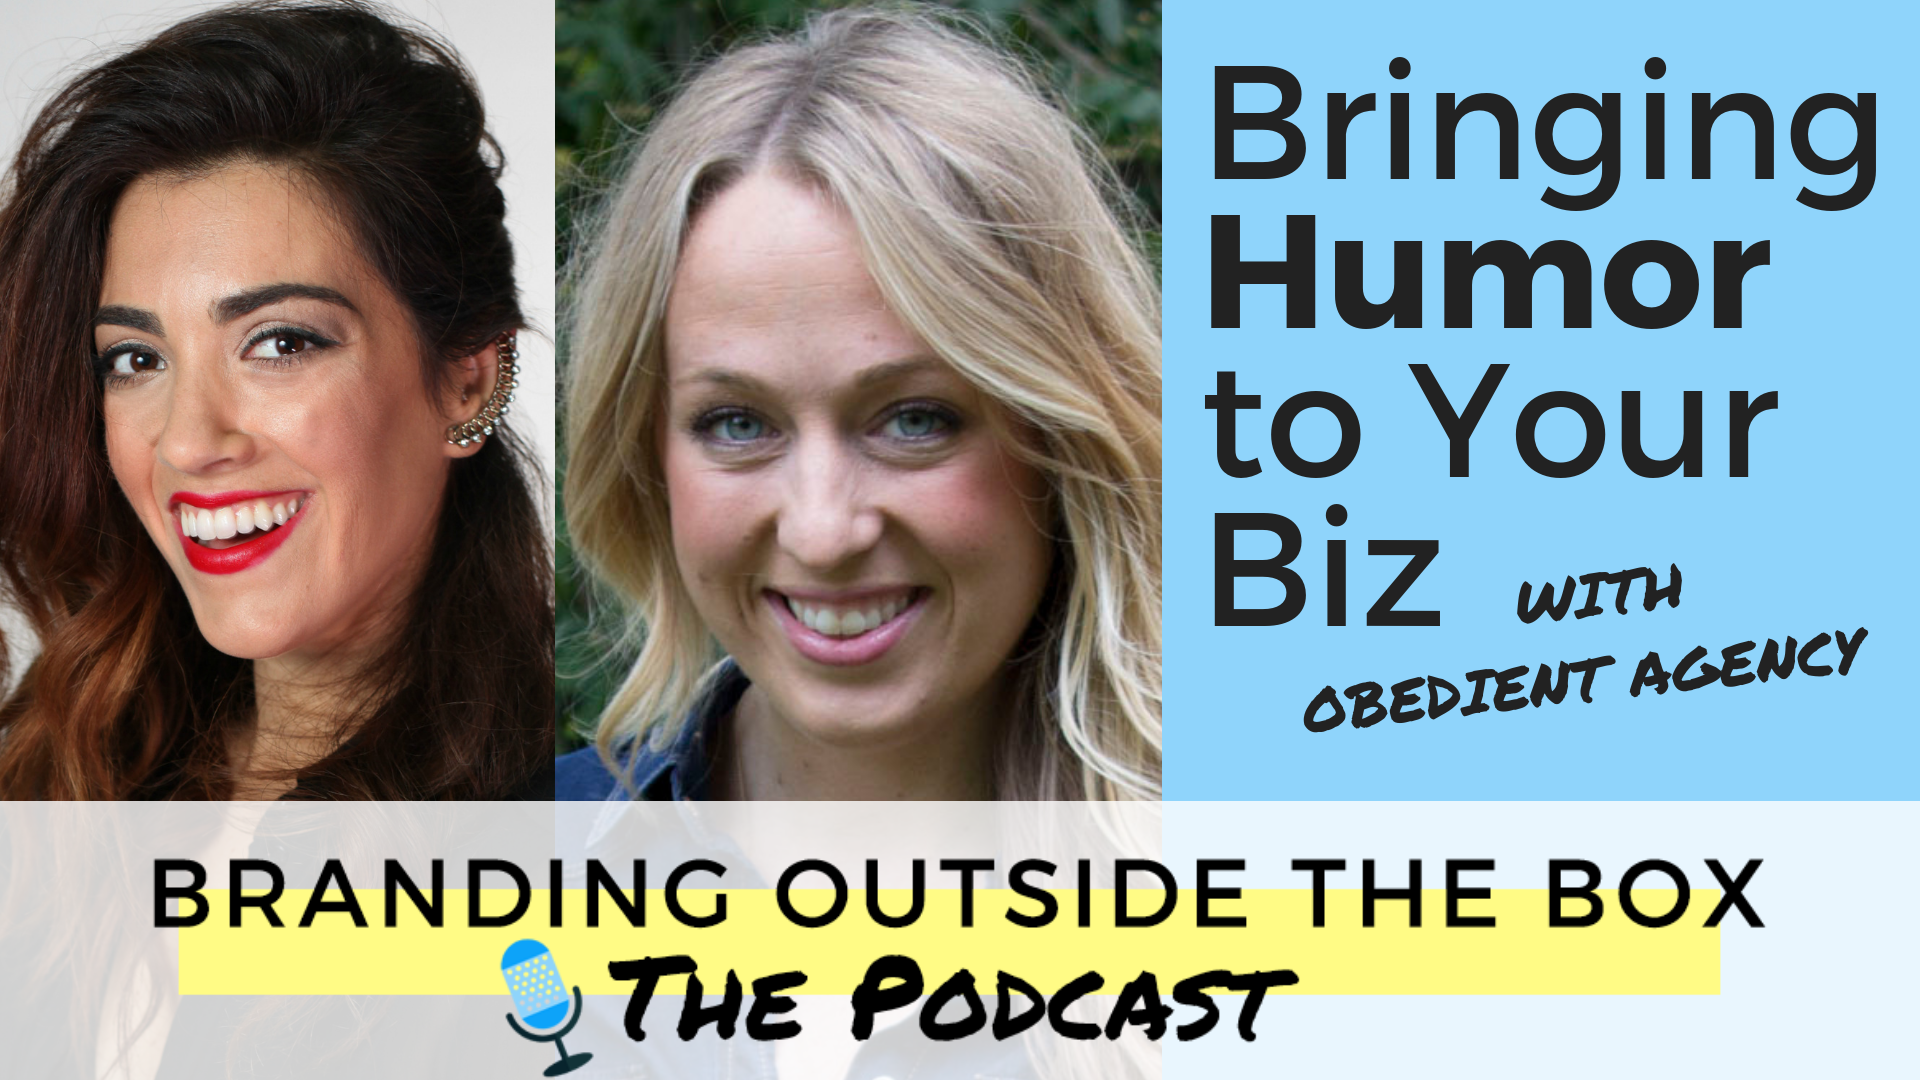 Bringing Humor to Your Biz with Obedient Agency